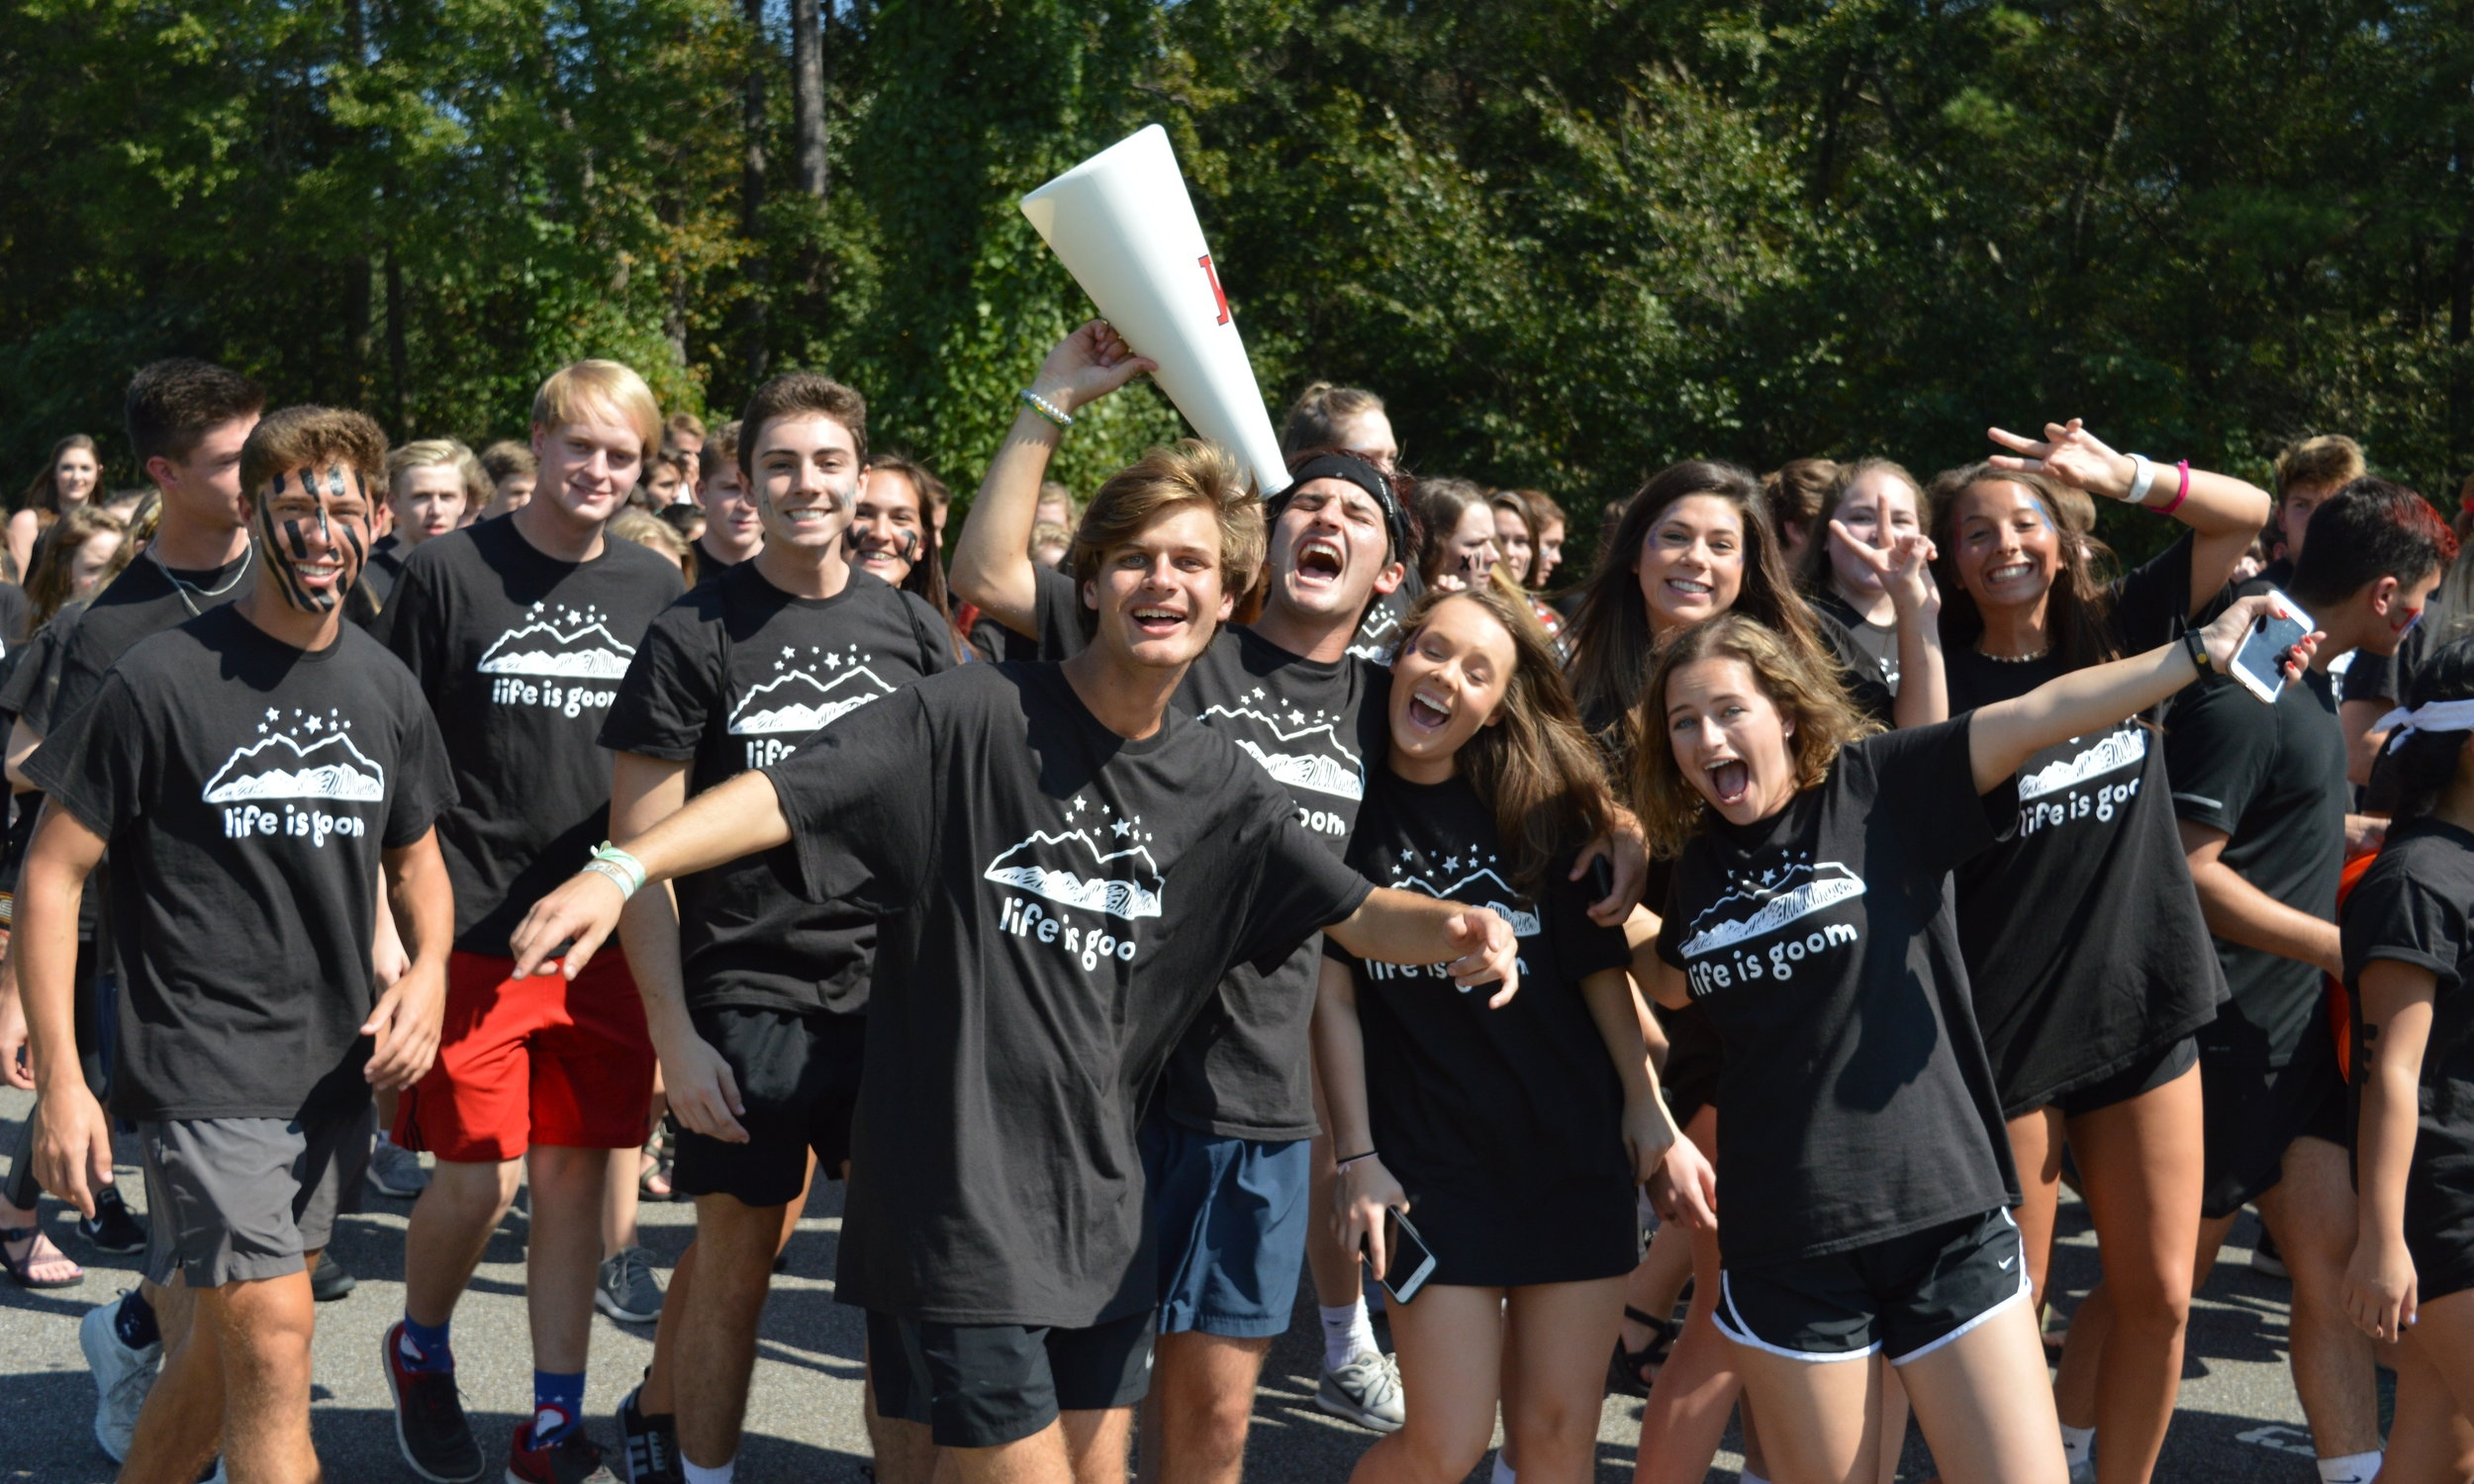 One of the most sacred homecoming week traditions is the Homecoming Parade during the afternoon on the Friday of the game. The parade begins at the high school and winds around to the intermediate school. Students from every Oak Mountain school, parents, and community leaders attend this event.